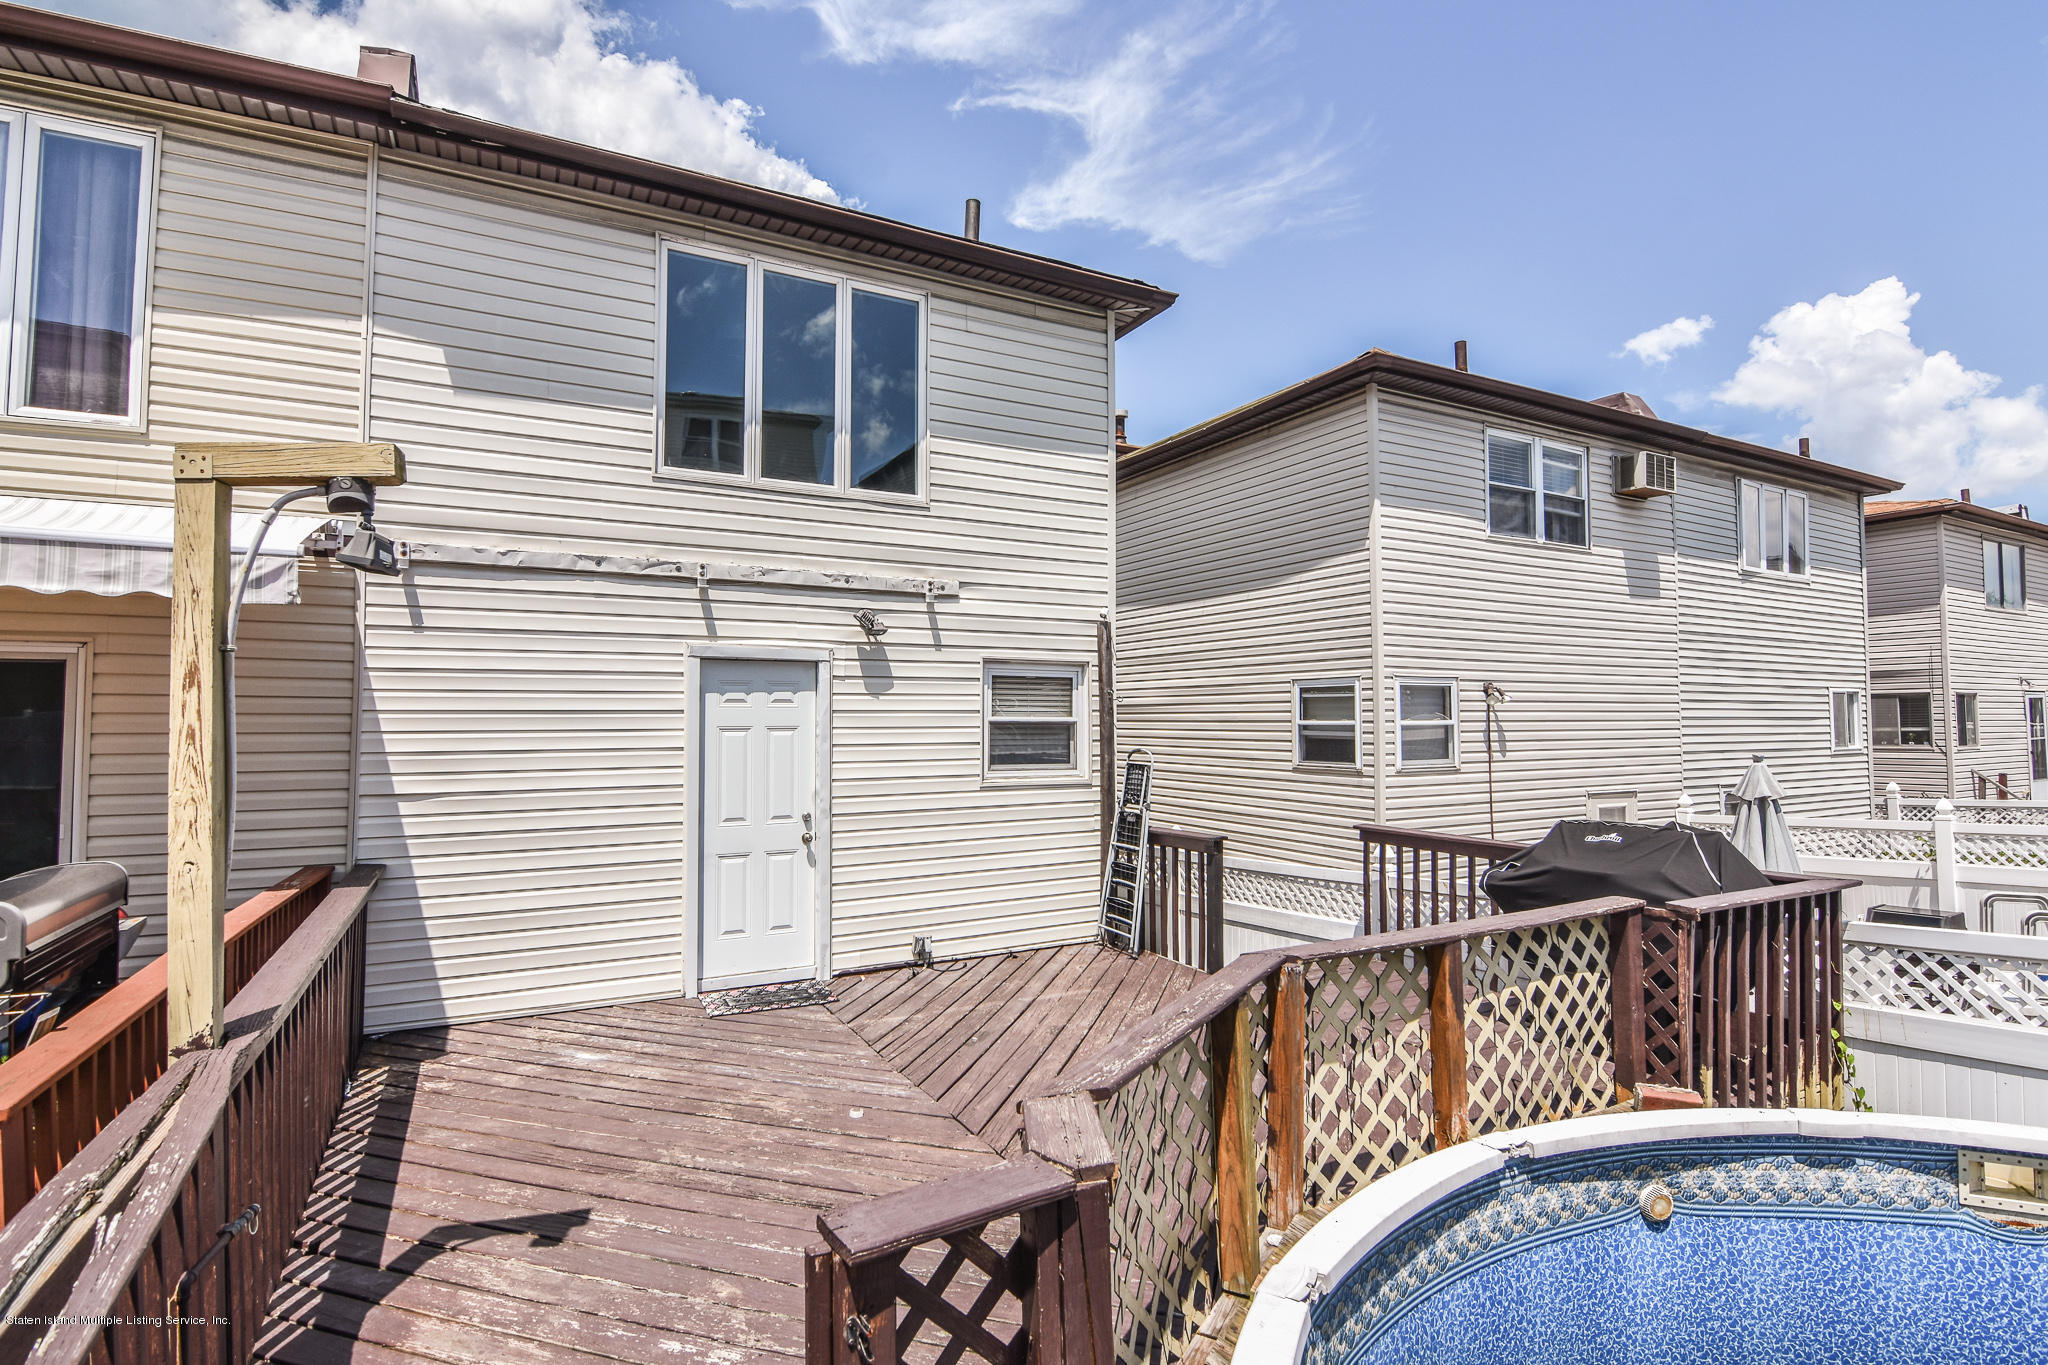 Single Family - Semi-Attached 12 Ebey Lane  Staten Island, NY 10312, MLS-1131132-25